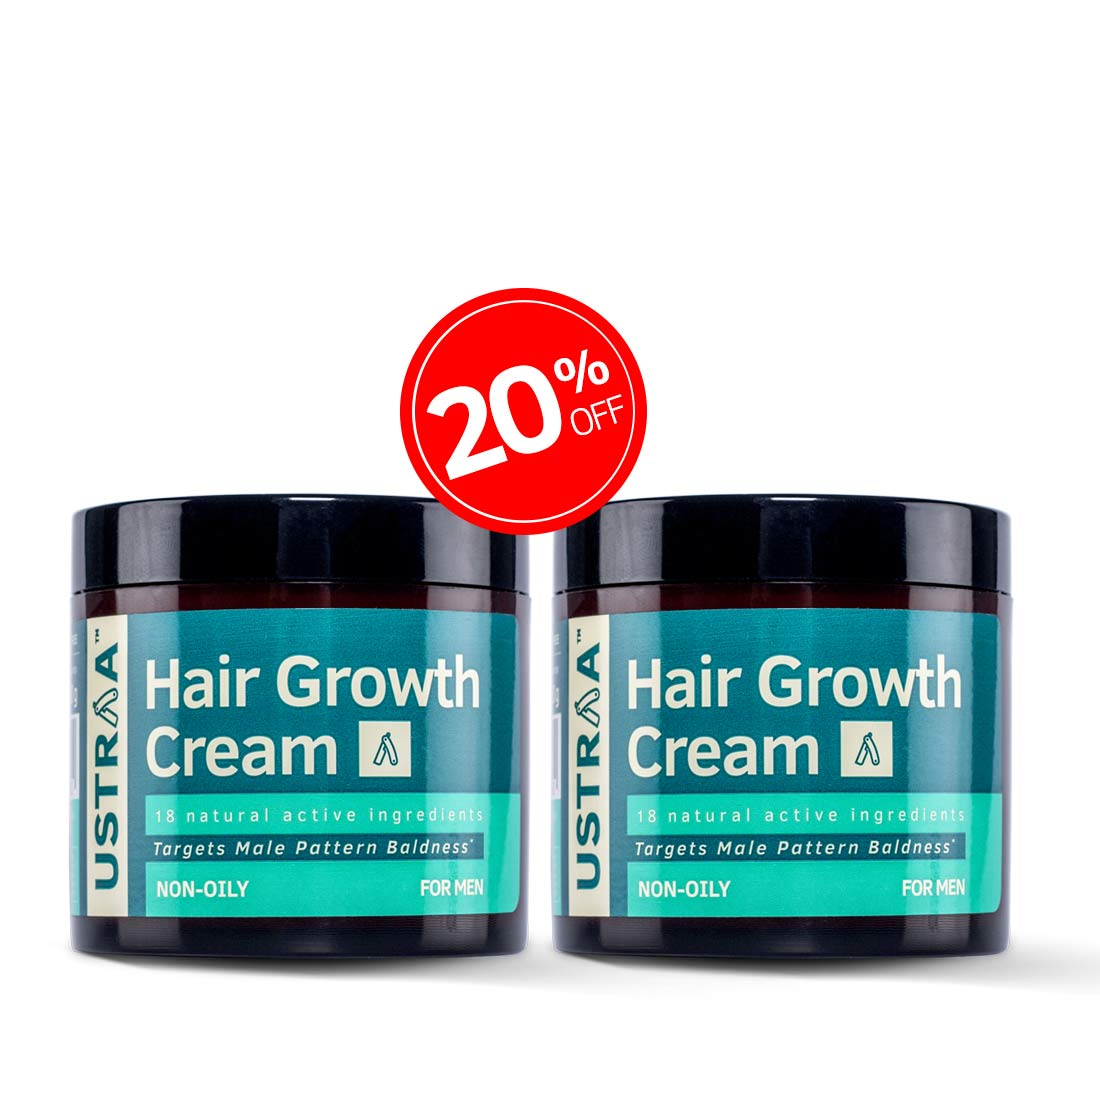 Hair growth cream - Set of 2